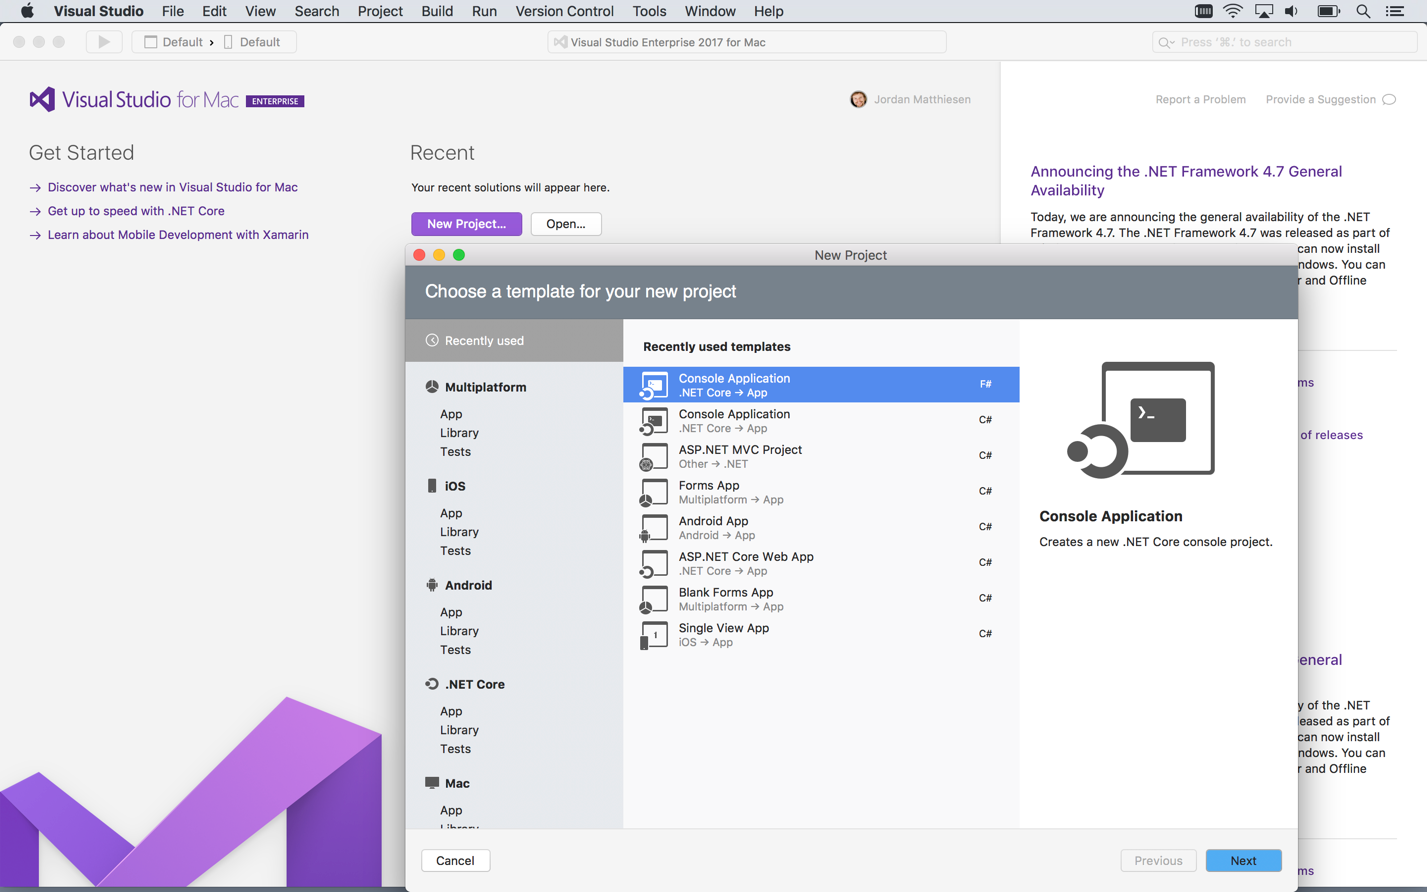 Get Started with Visual Studio for Mac